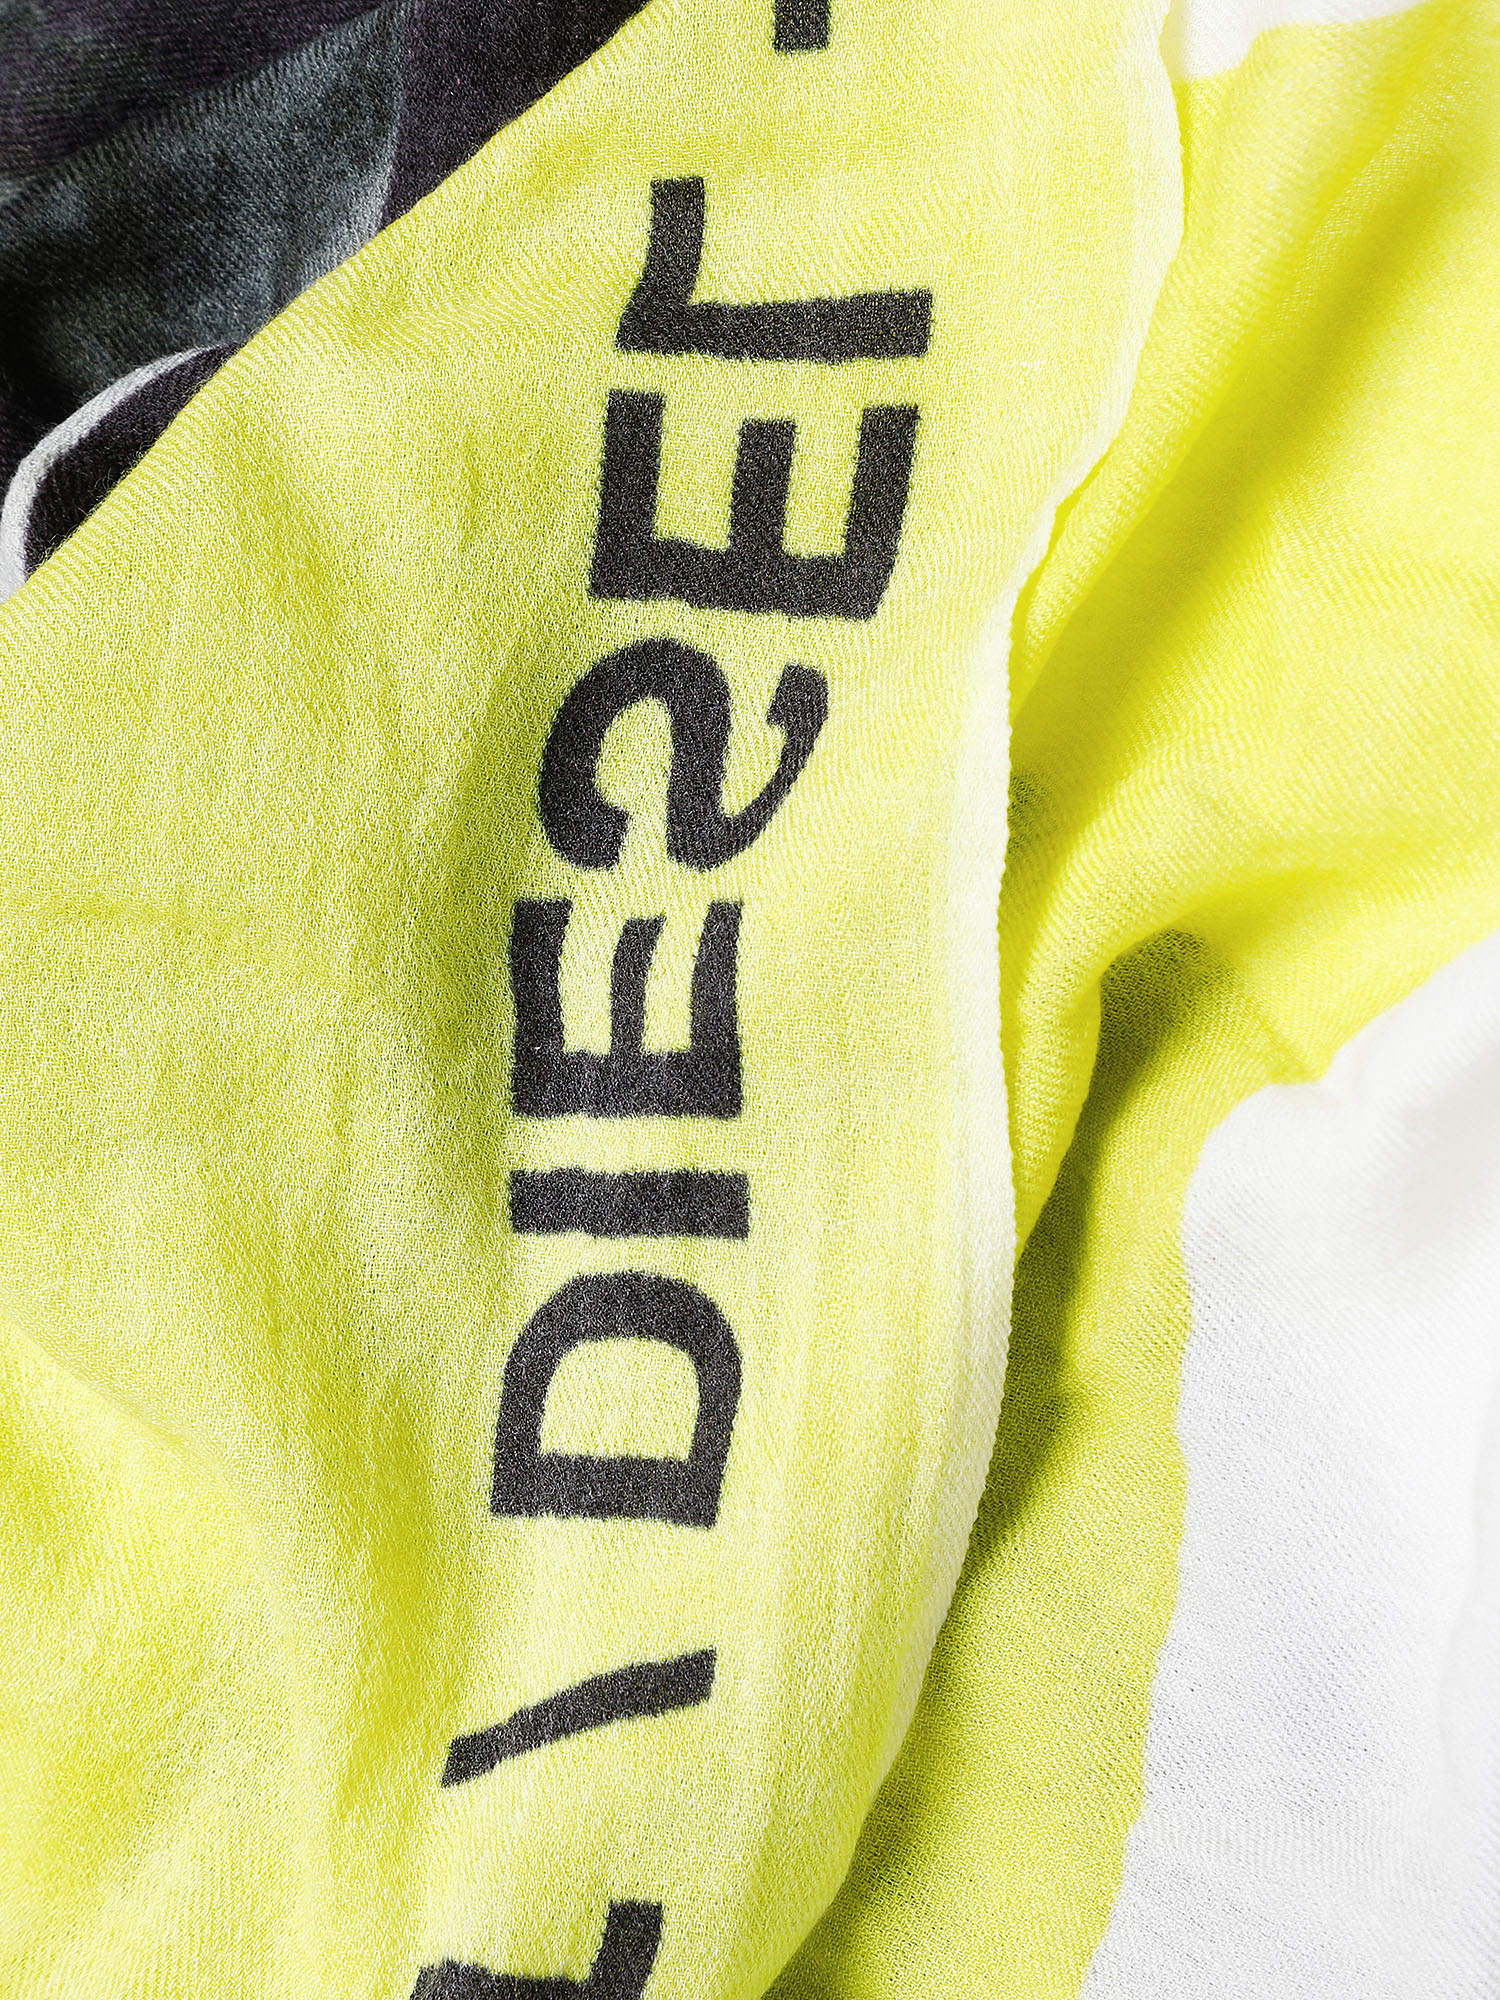 Diesel - SRIGHT,  - Scarf - Image 3